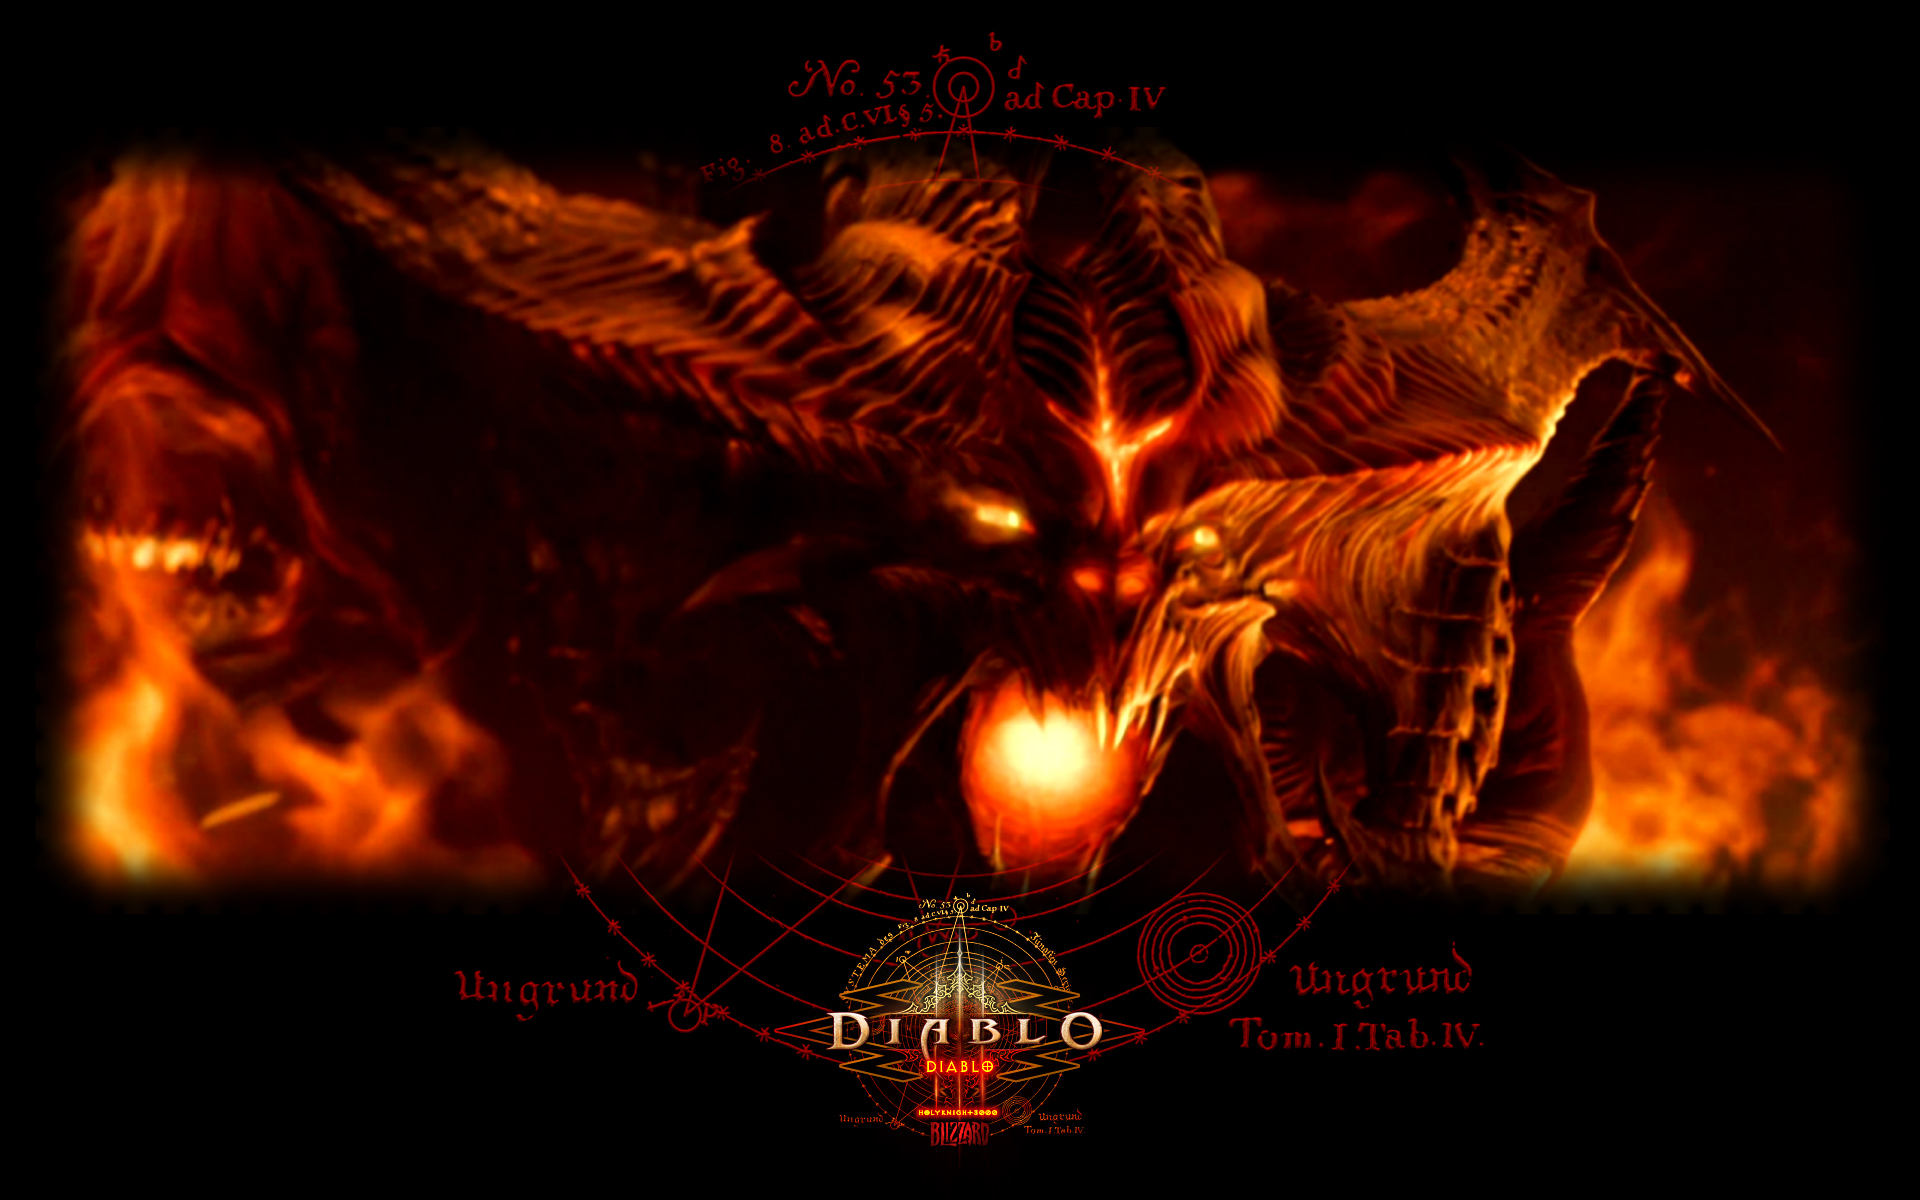 Diablo___A_Year_in_Wallpape